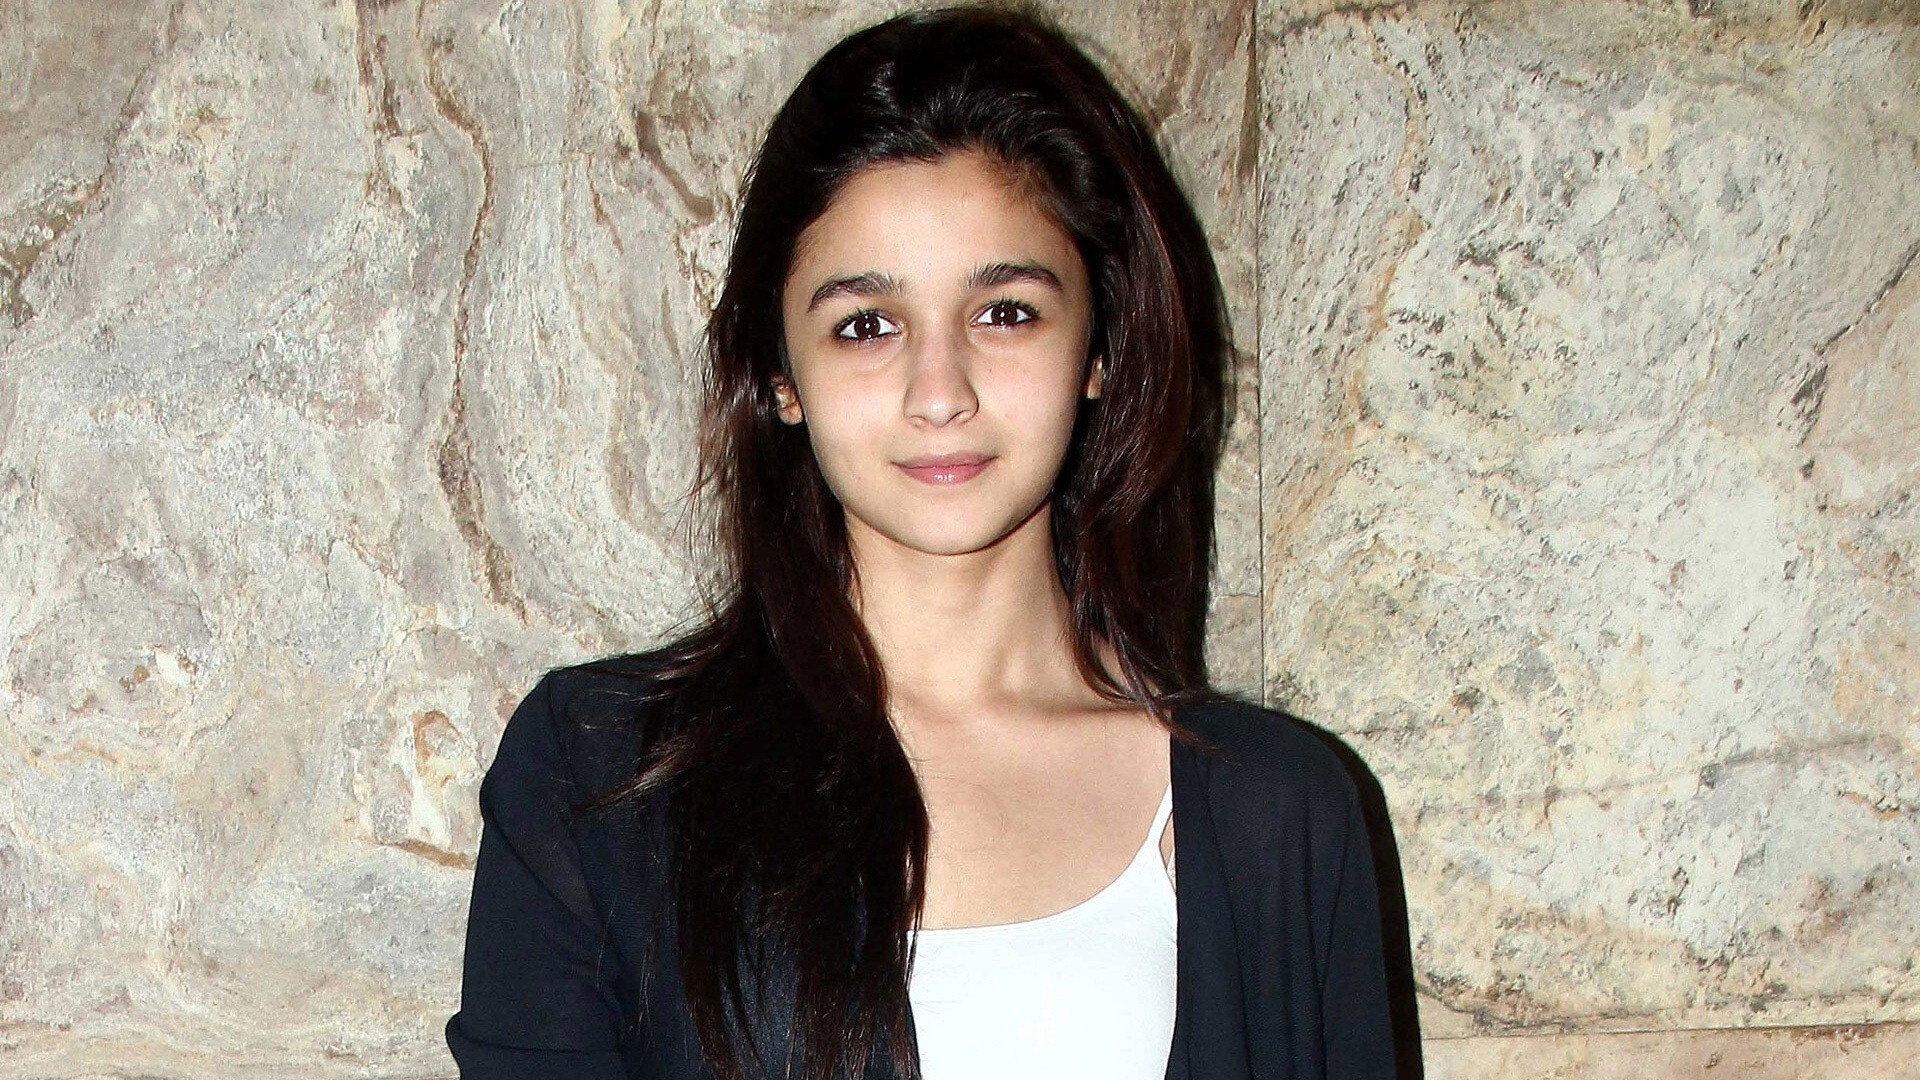 alia bhatt without makeup photo hd wallpapers